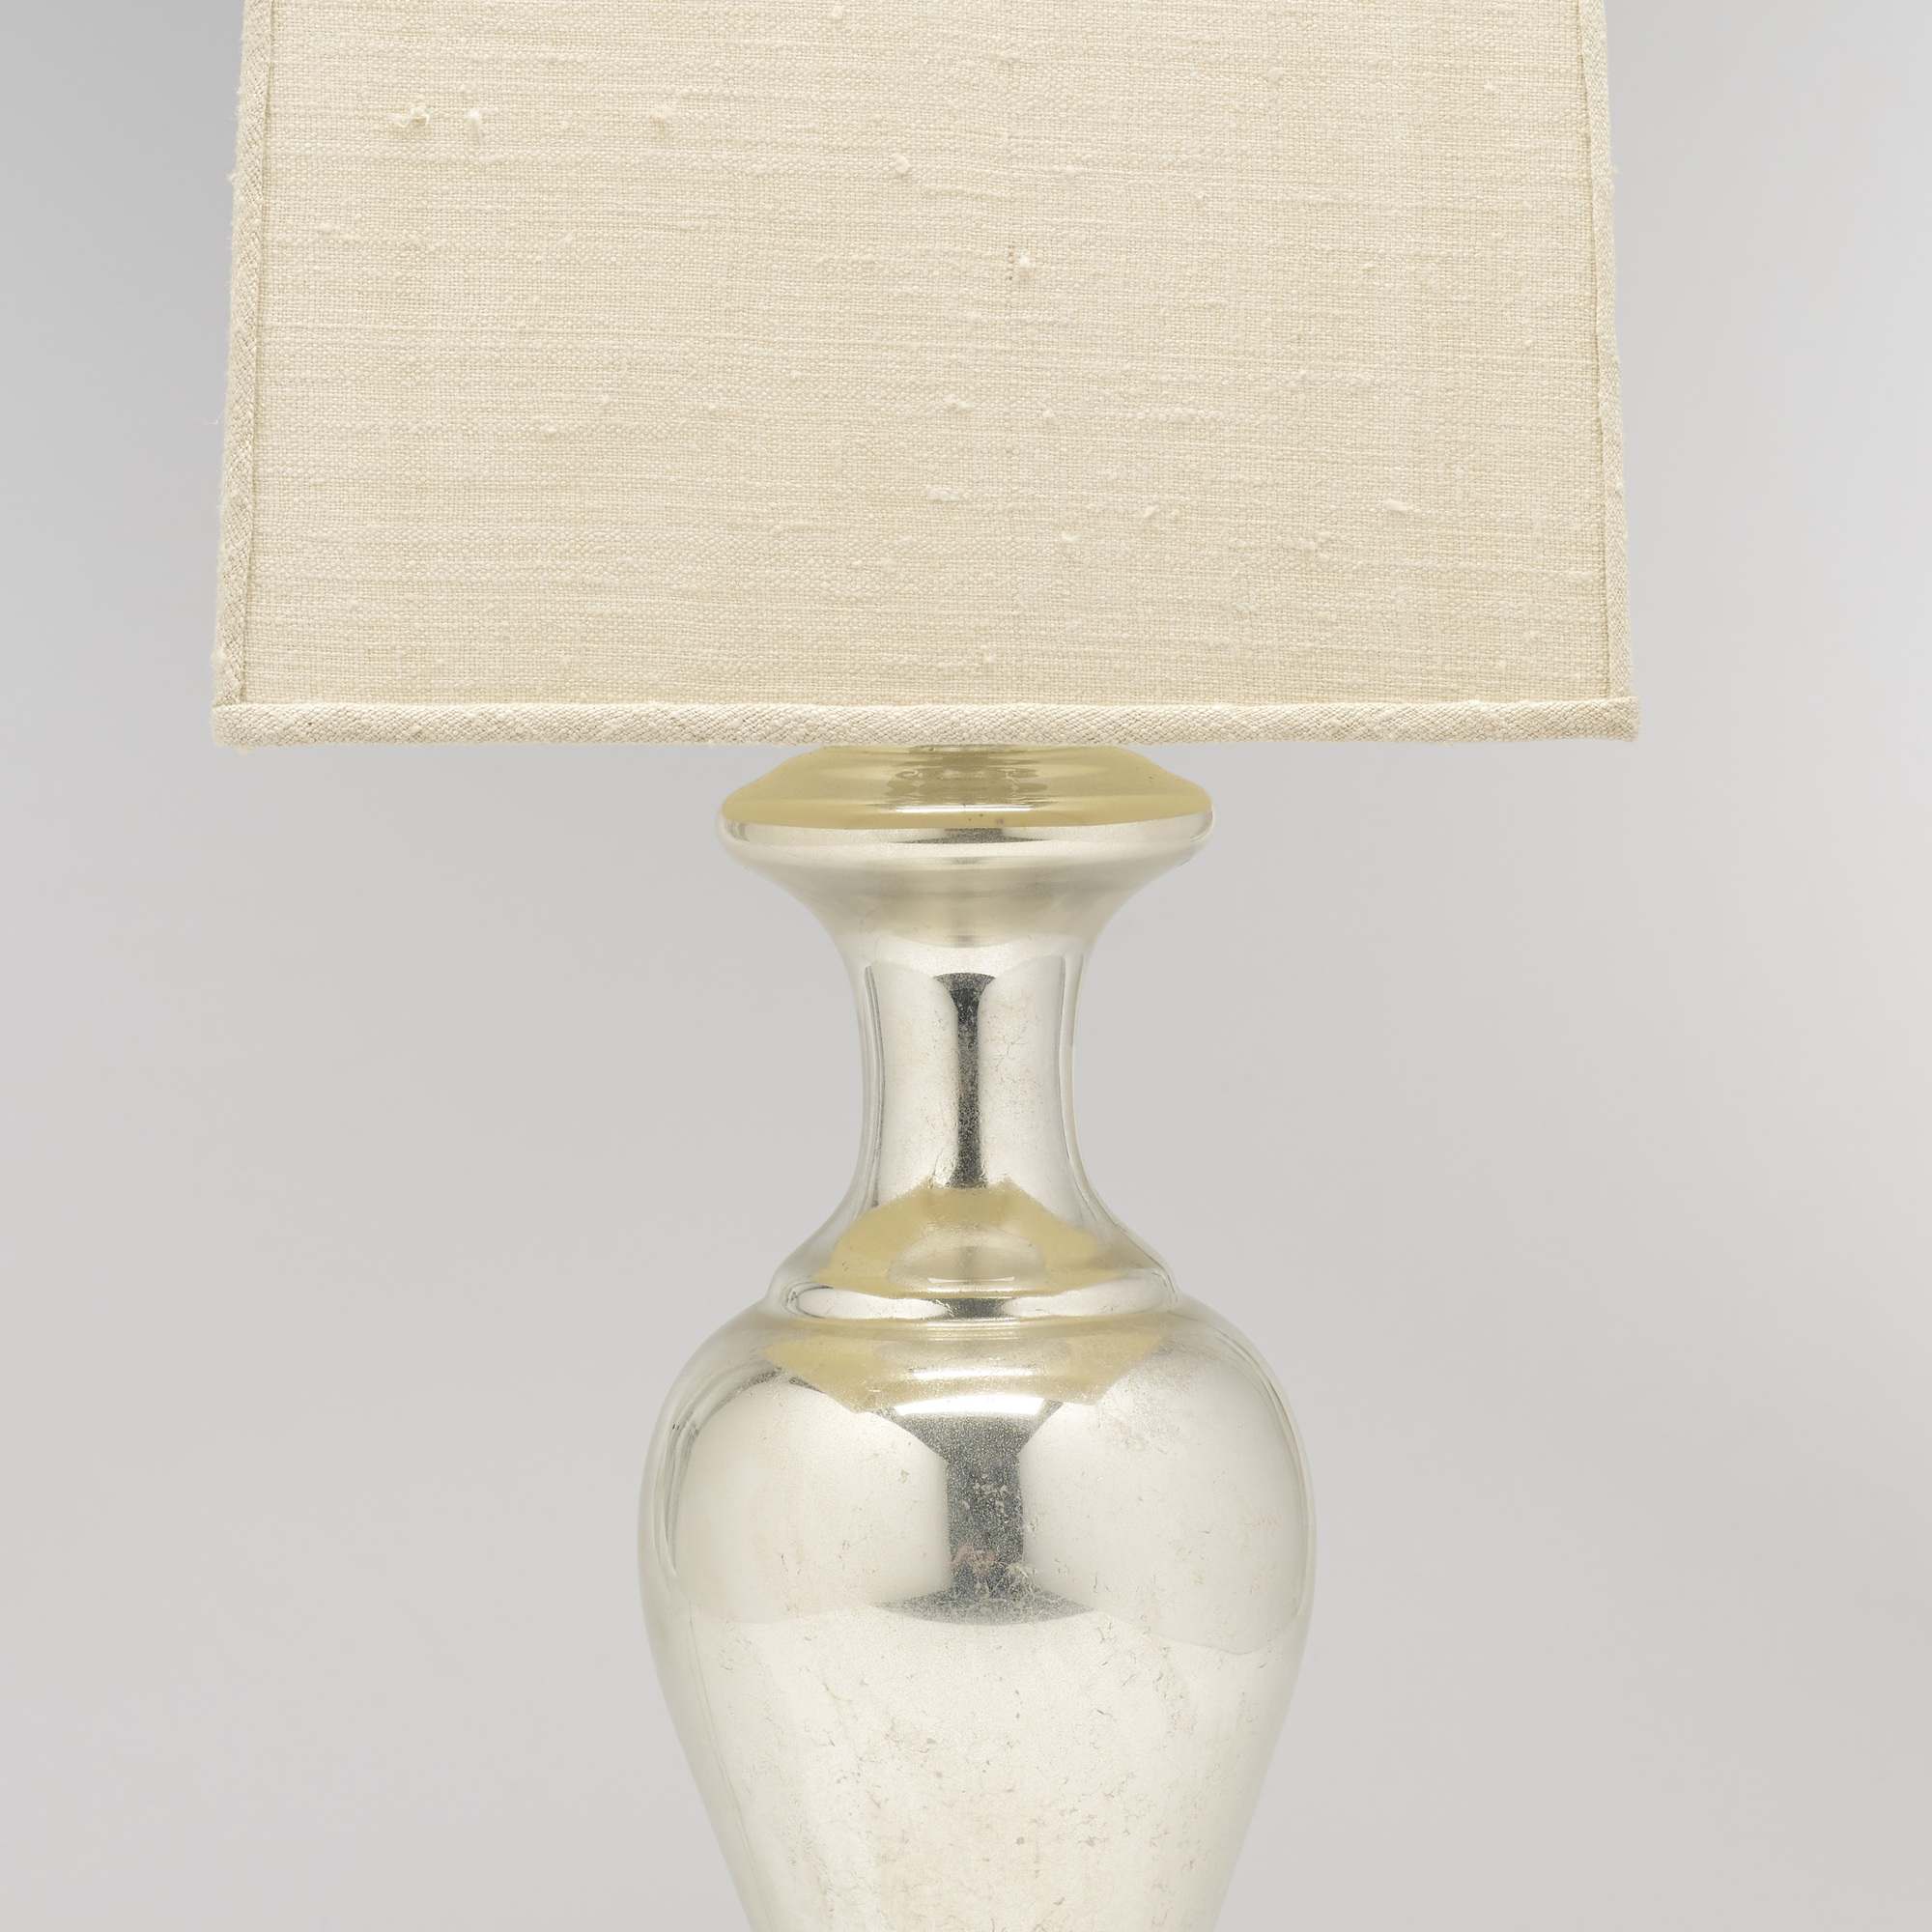 246: Modern / table lamps, pair (2 of 2)